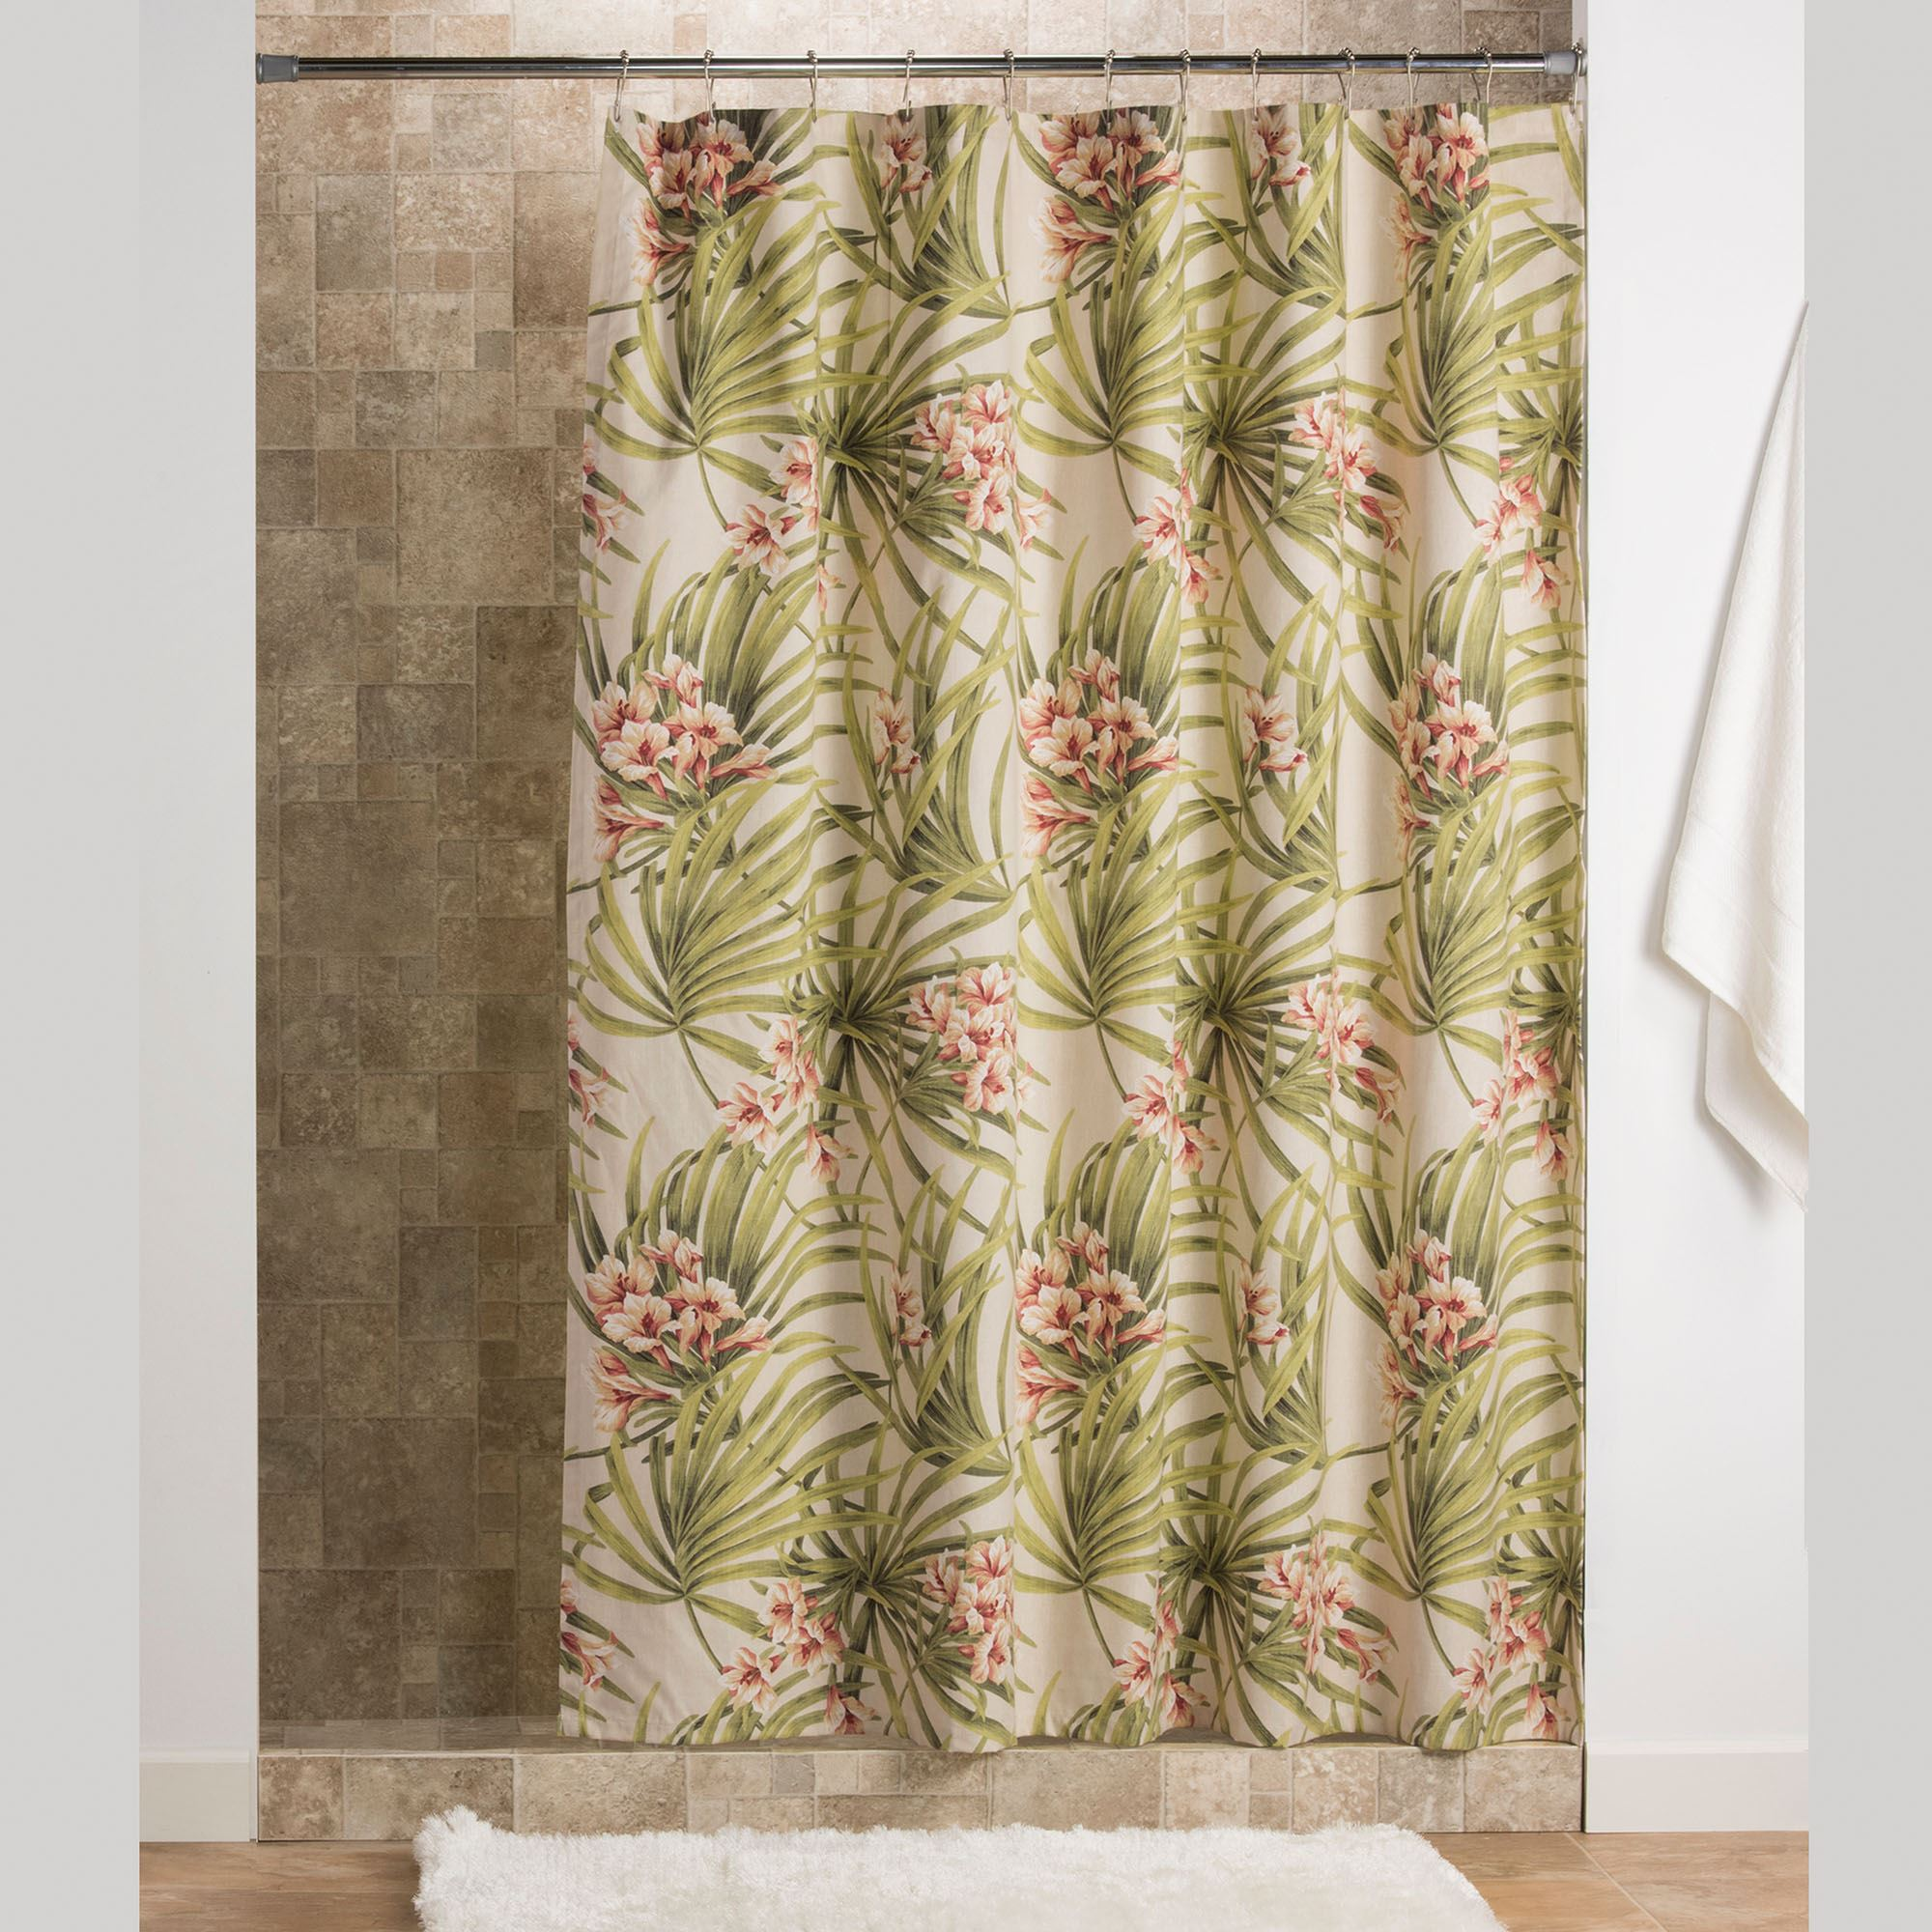 Katia Tropical Shower Curtain Light Cream 72 X 75 Touch To Zoom